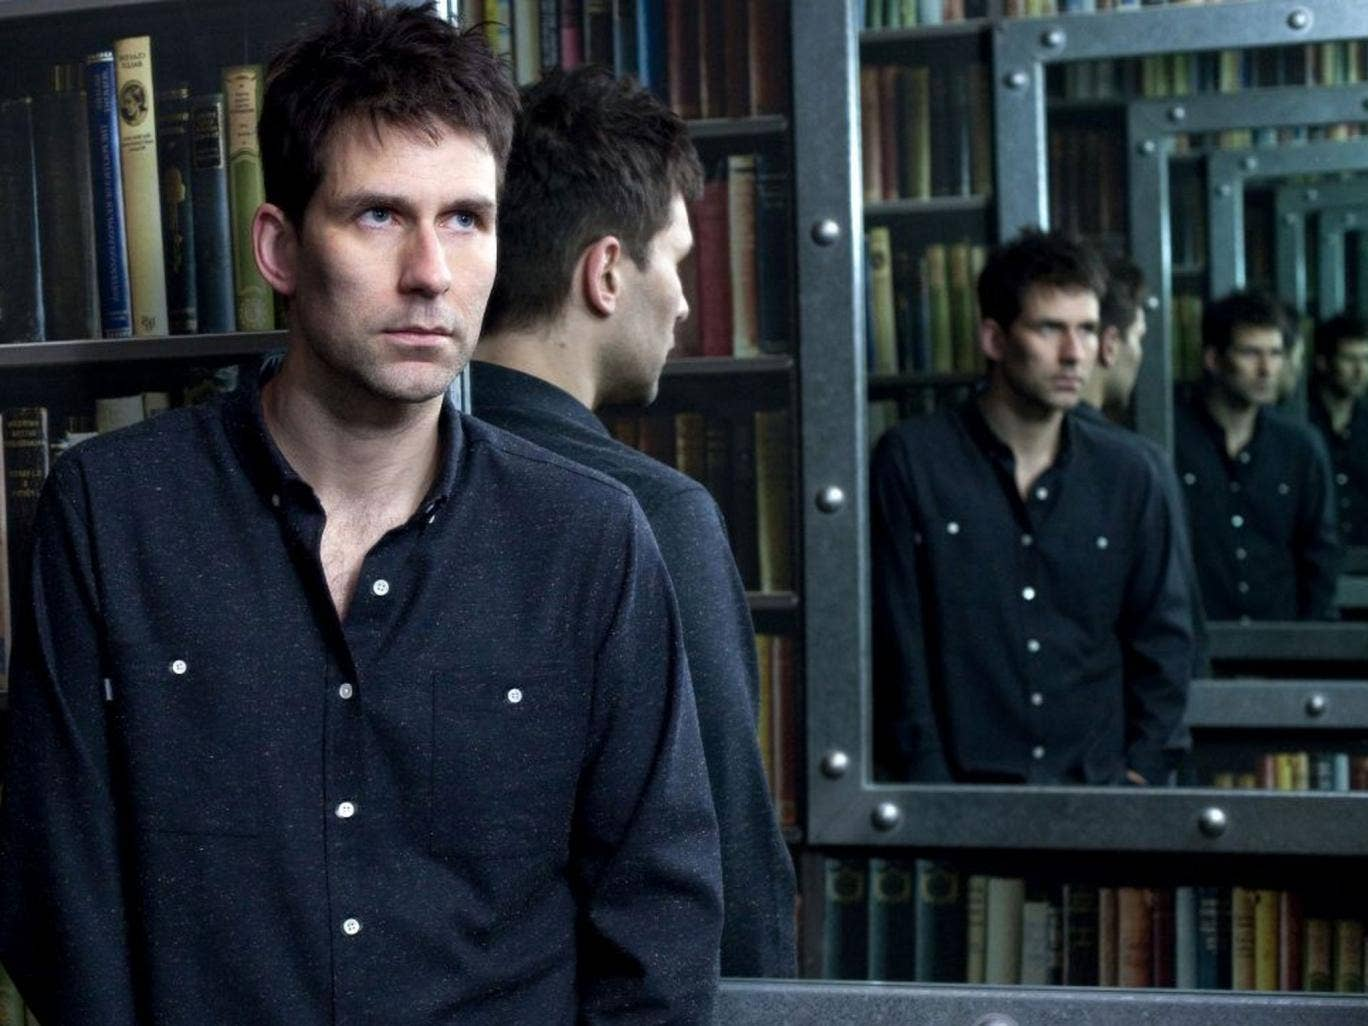 Jamie Lidell appears to have settled into a new, comfortable place